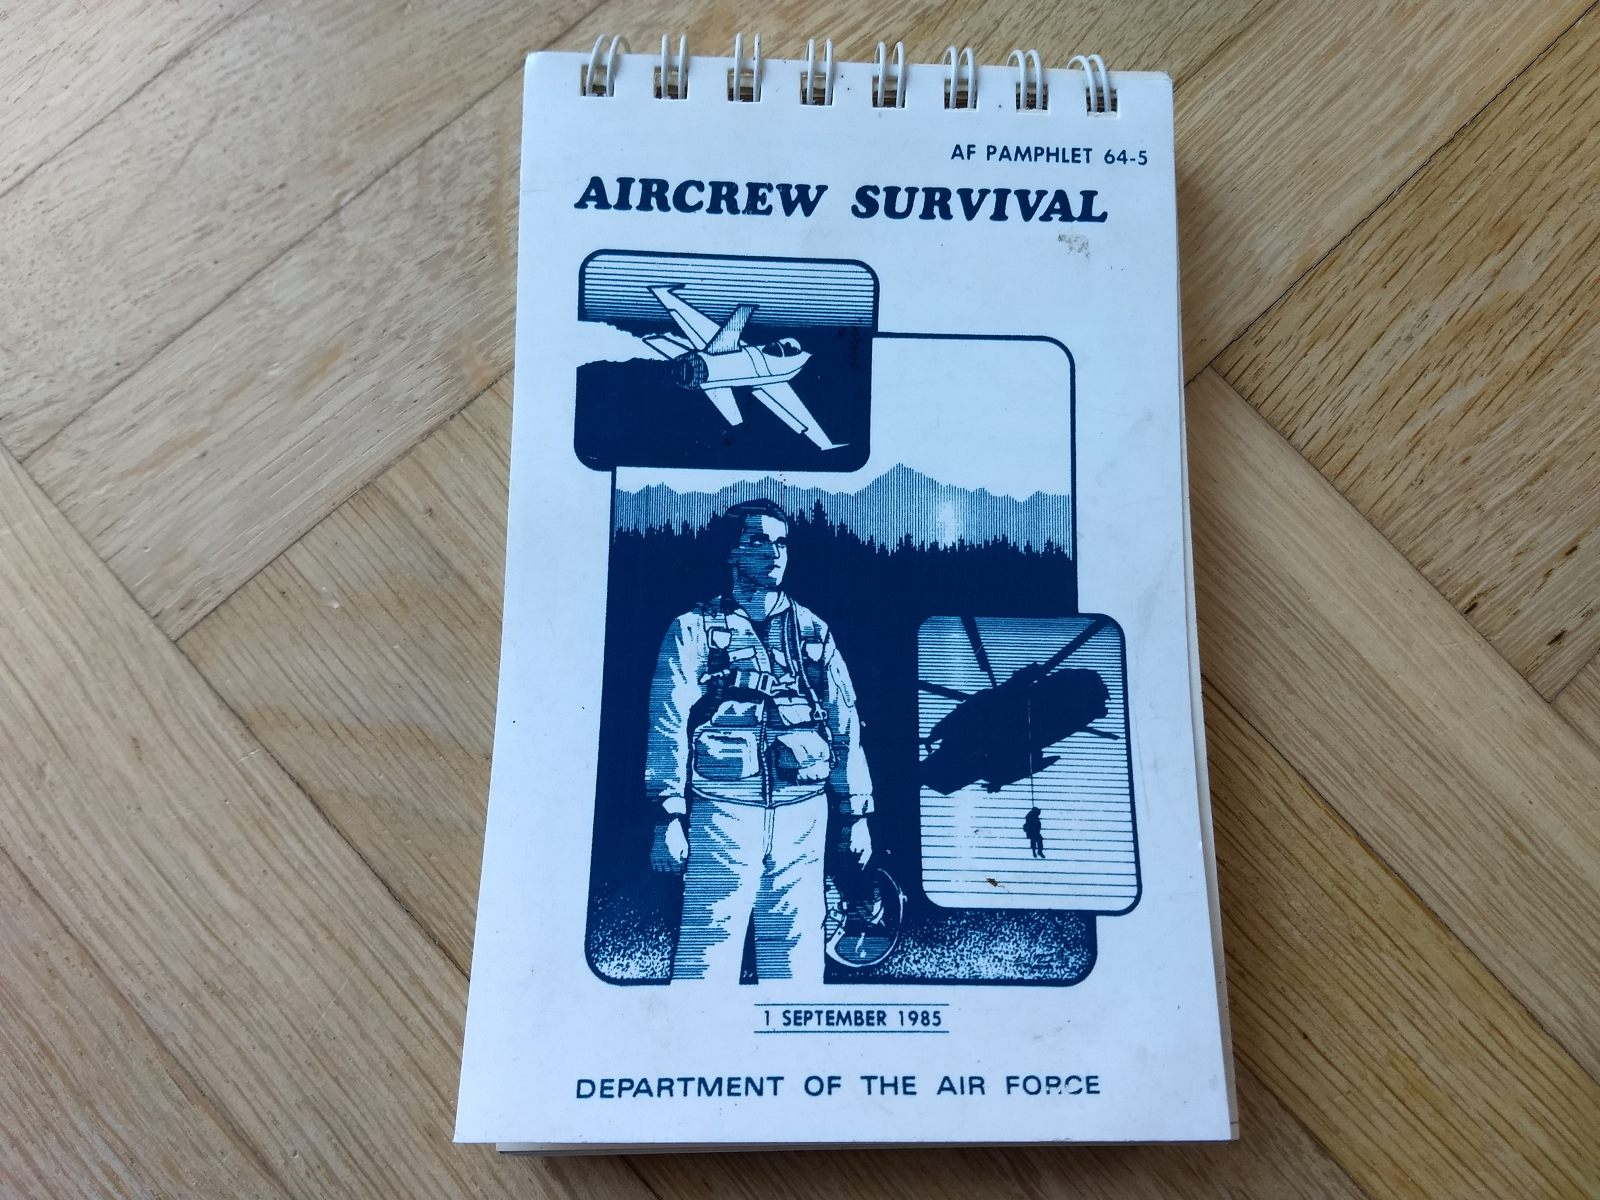 Aircrew Survival 02